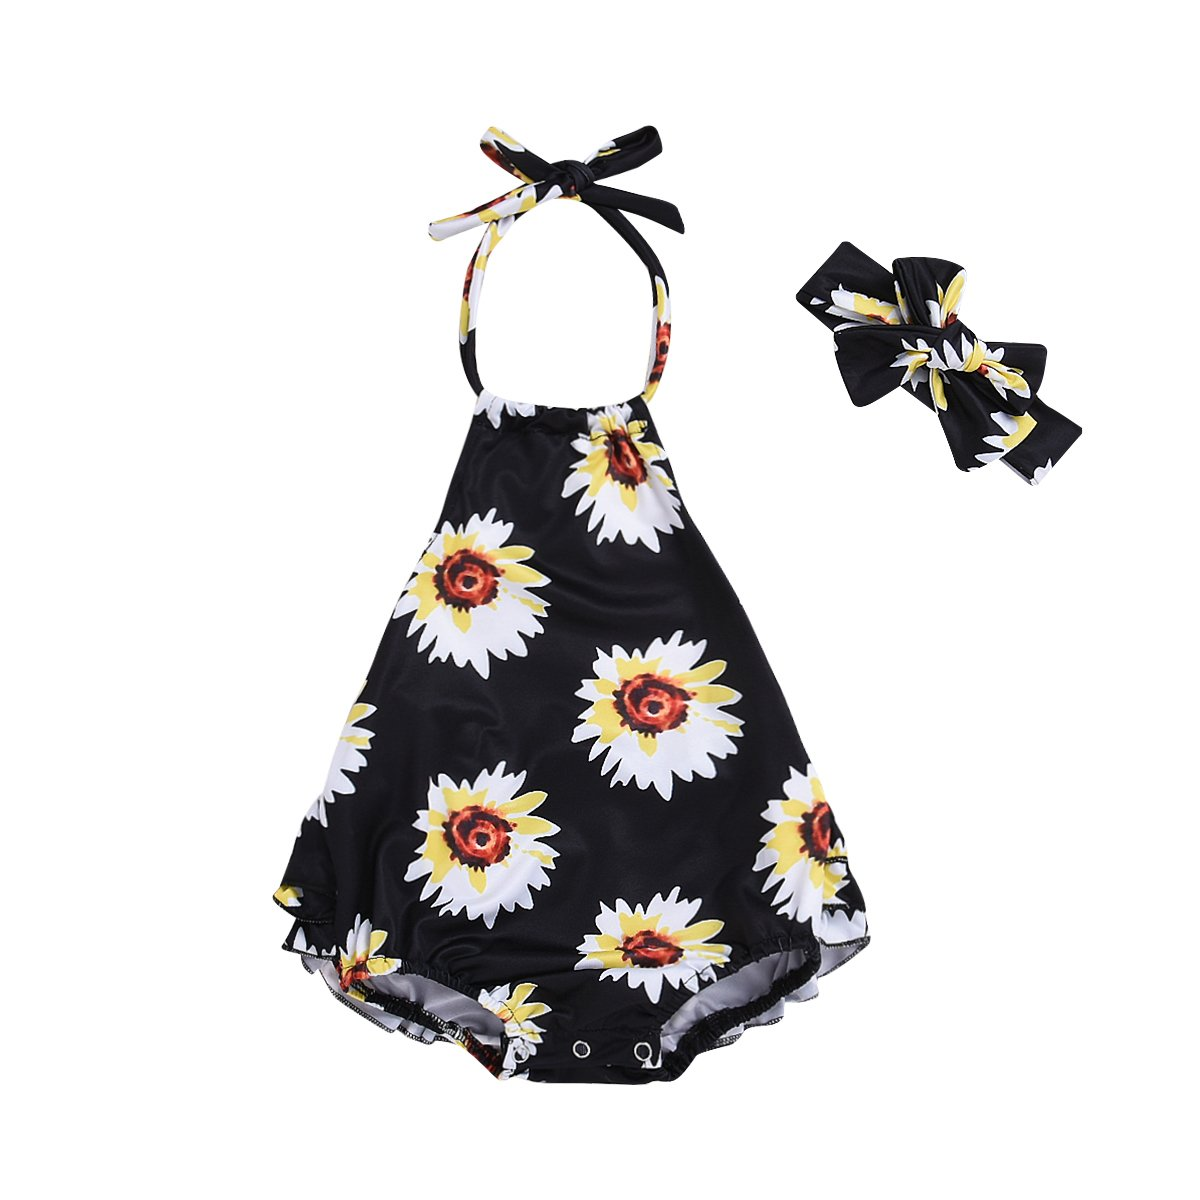 Headband Younger Tree Infant Newborn Baby Girls Romper Bodysuit Clothes Ruffles Sunflower Printed Jumpsuit Summer Set